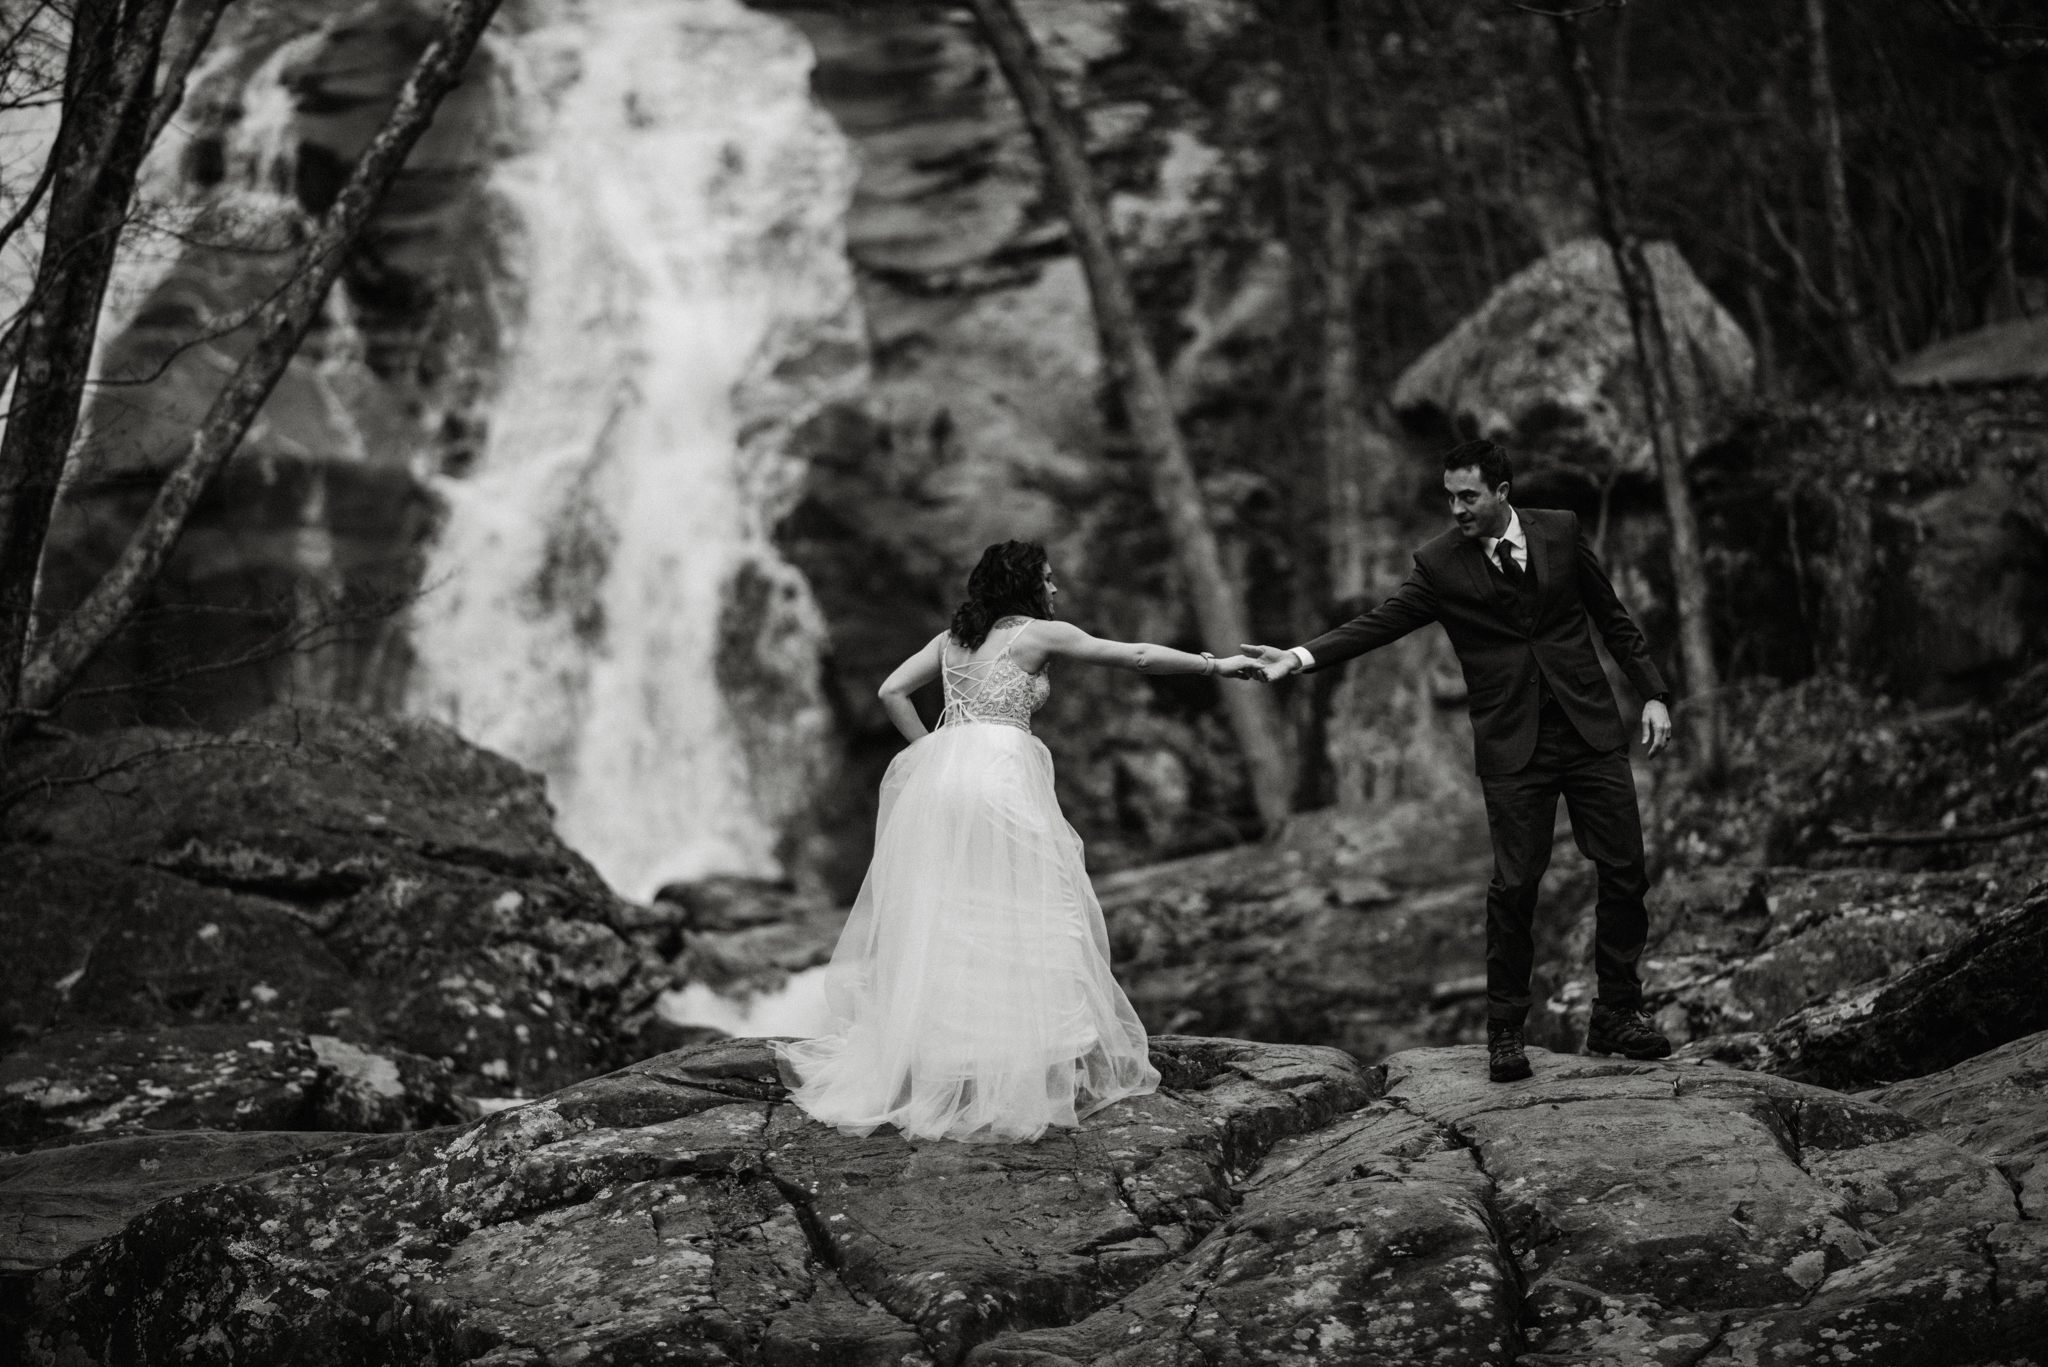 Stephanie and Steve - Shenandoah National Park Elopement - Sunrise Hiking Elopement - Adventurous Elopement - Virginia Elopement Photographer - Shenandoah national Park Wedding Photographer - White Sails Creative_16.jpg